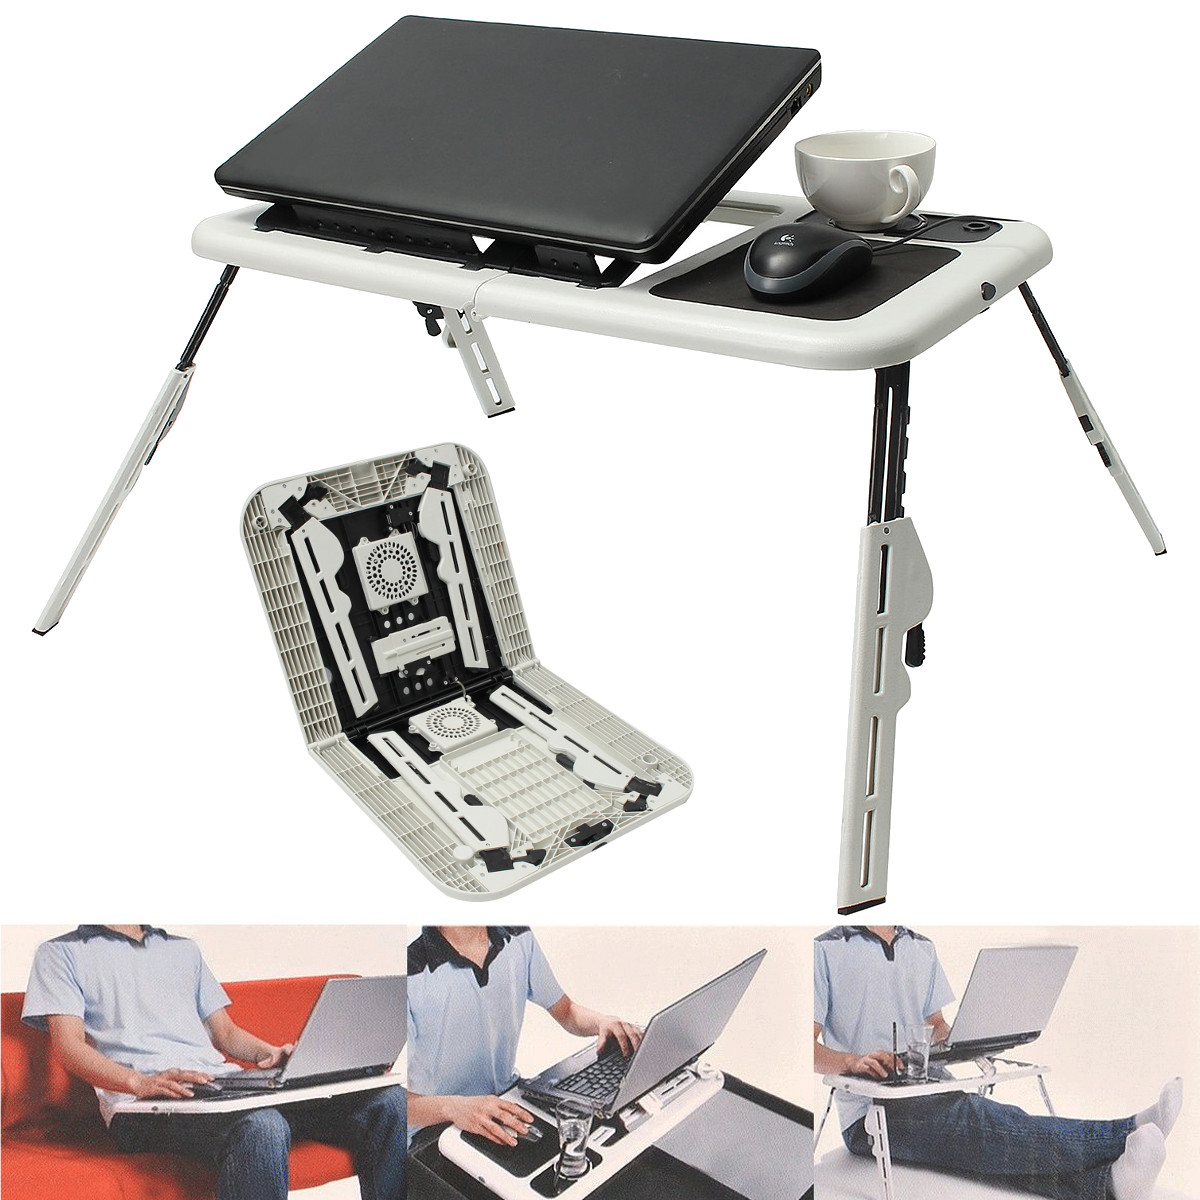 Folding Laptop Notebook Tech&Gadgets Table Stand Tray Desk With USB Cooling Fans For Sofa Bed Carpet Lawn